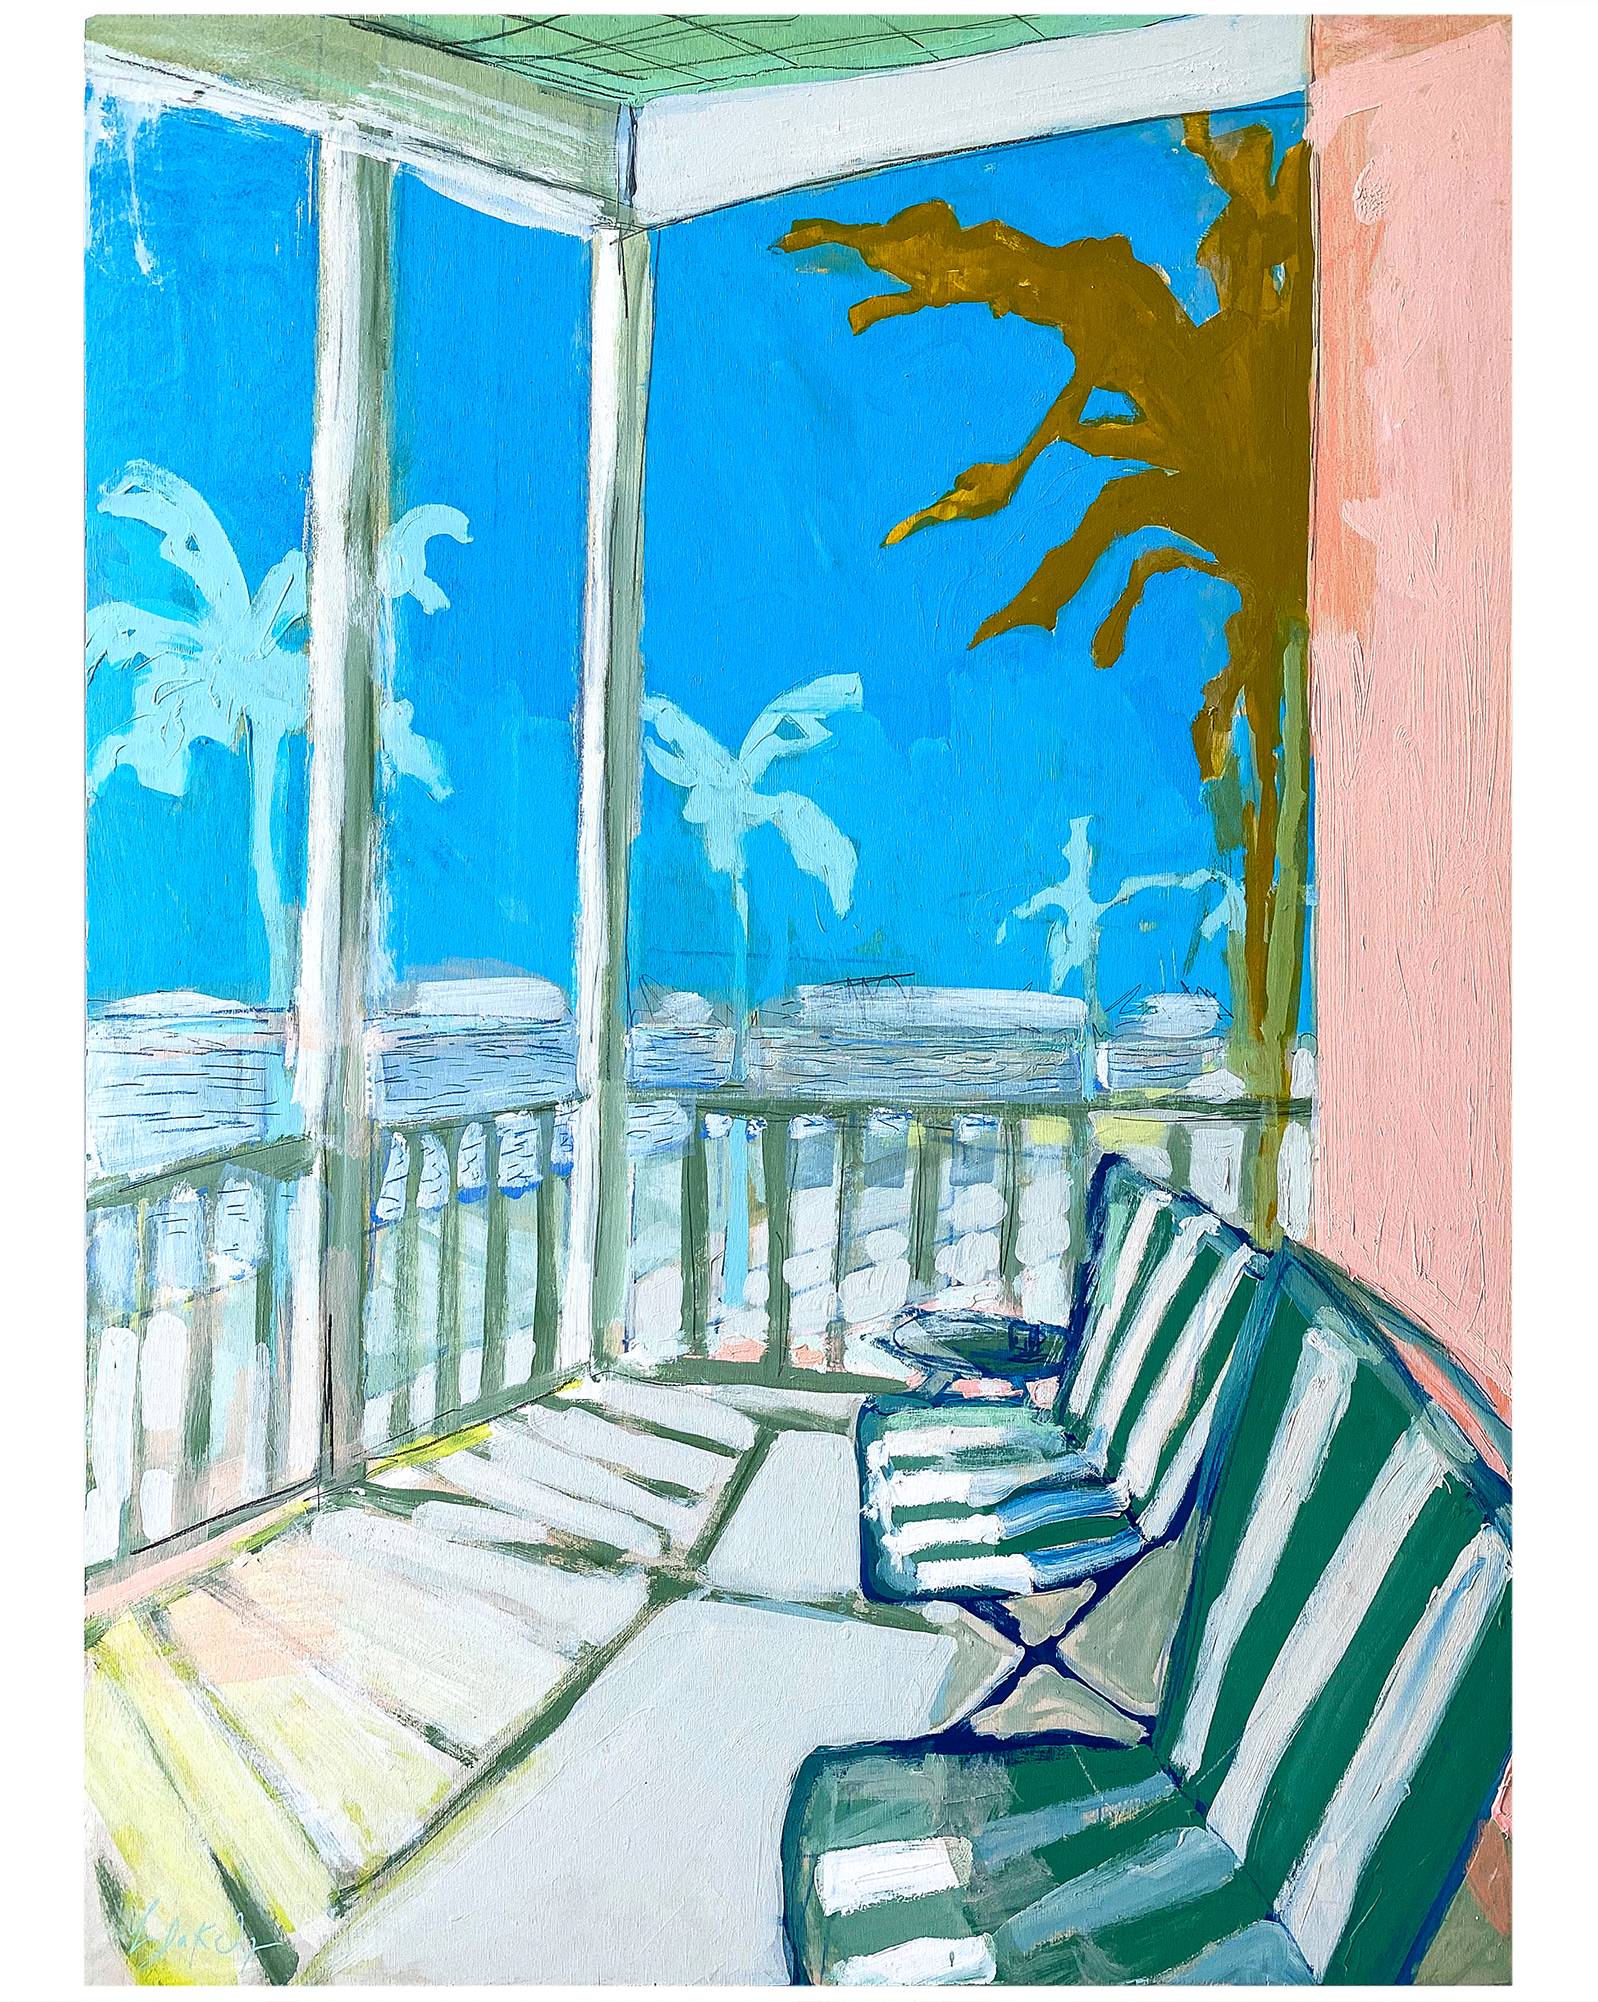 Bliss on a porch by Blakely Made - a painting available through Serena & Lily. #charleston #porches #painting #homedecor #artwork #walldecor